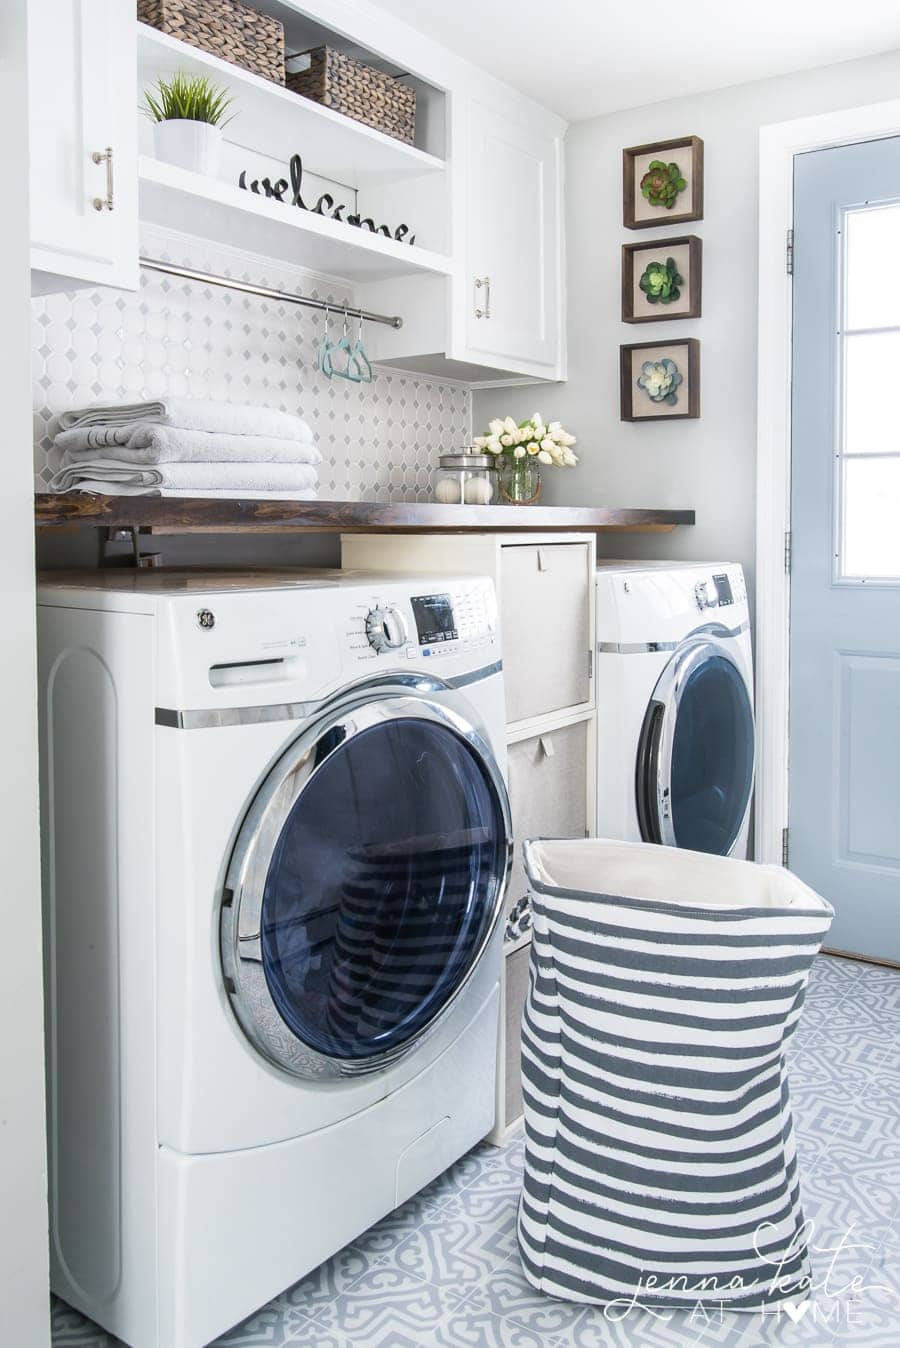 A view of the finished laundry room where the countertop now holds towels, a vase and a jar of dryer balls.